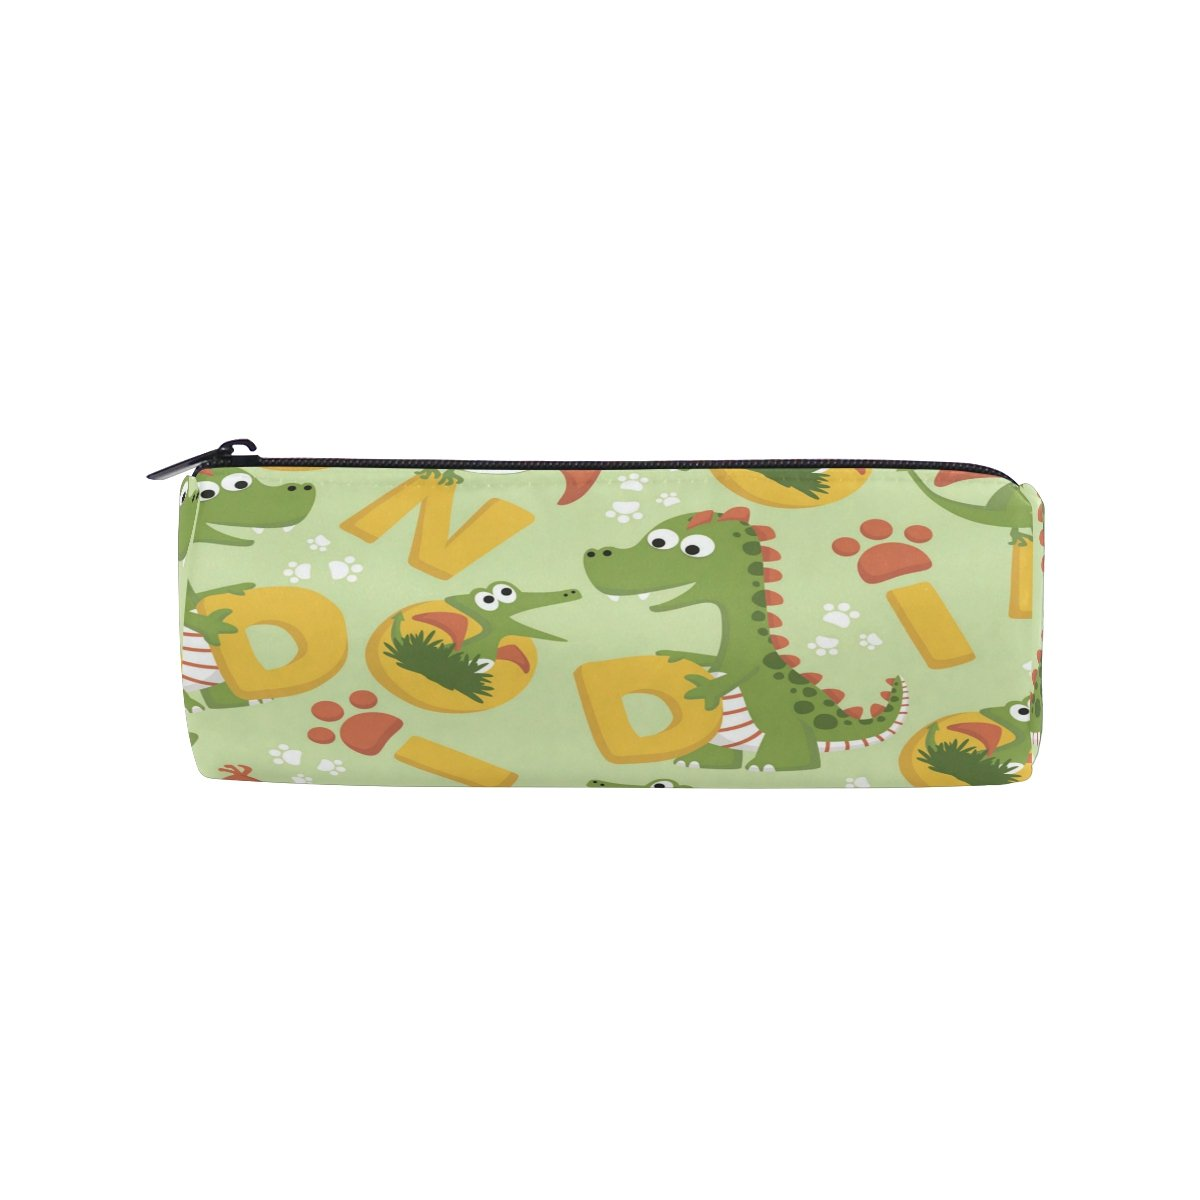 ALAZA Cute Dinosaurs with Letter Cartoon Barrel Pencil Bag Case Pouch Box Makeup Print,School Supplies for Kids Teens Student Office